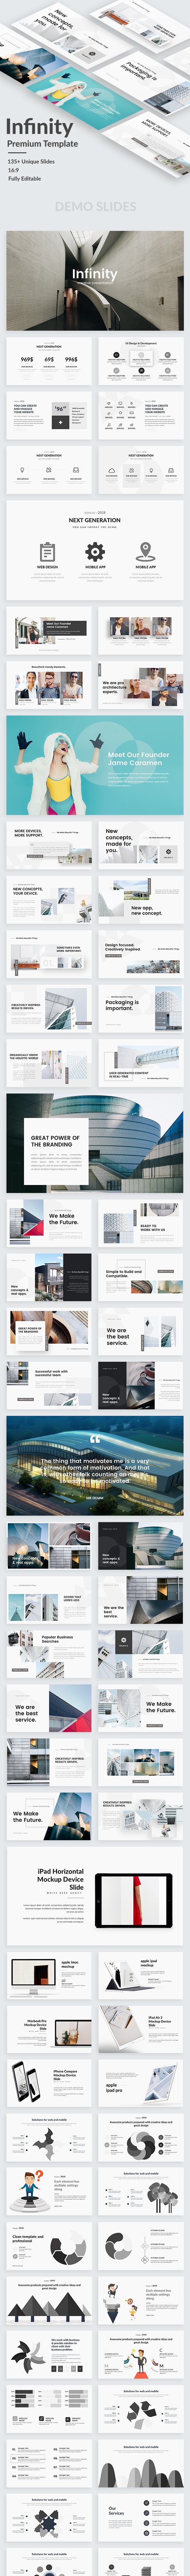 Infinity Creative Google Slide Template - Google Slides Presentation Templates